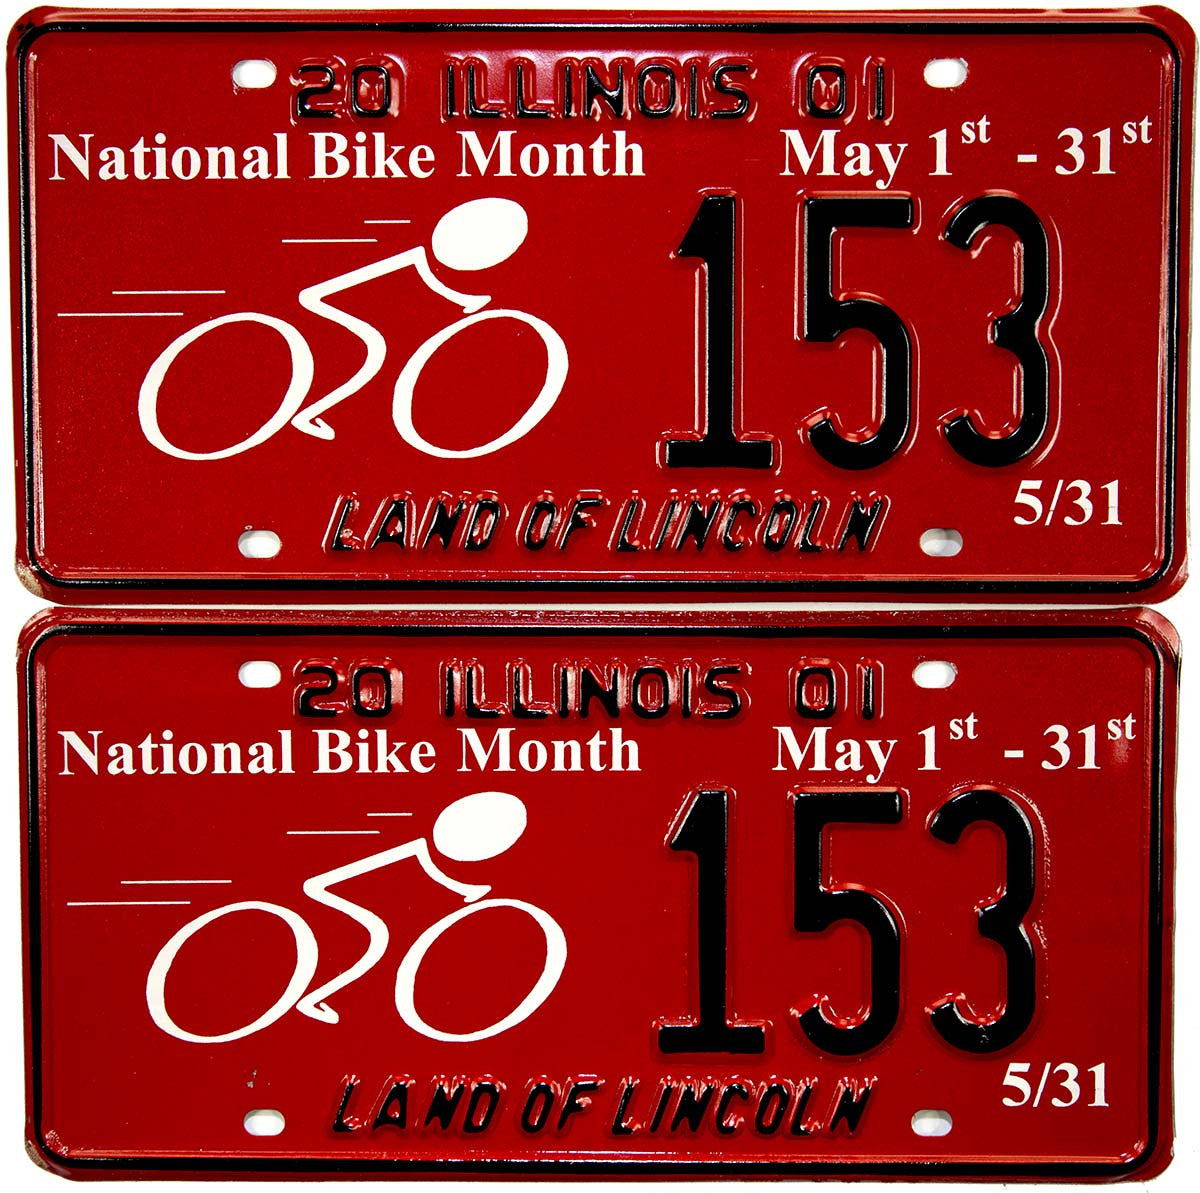 2001 Illinois National Bicycle Month License Plates